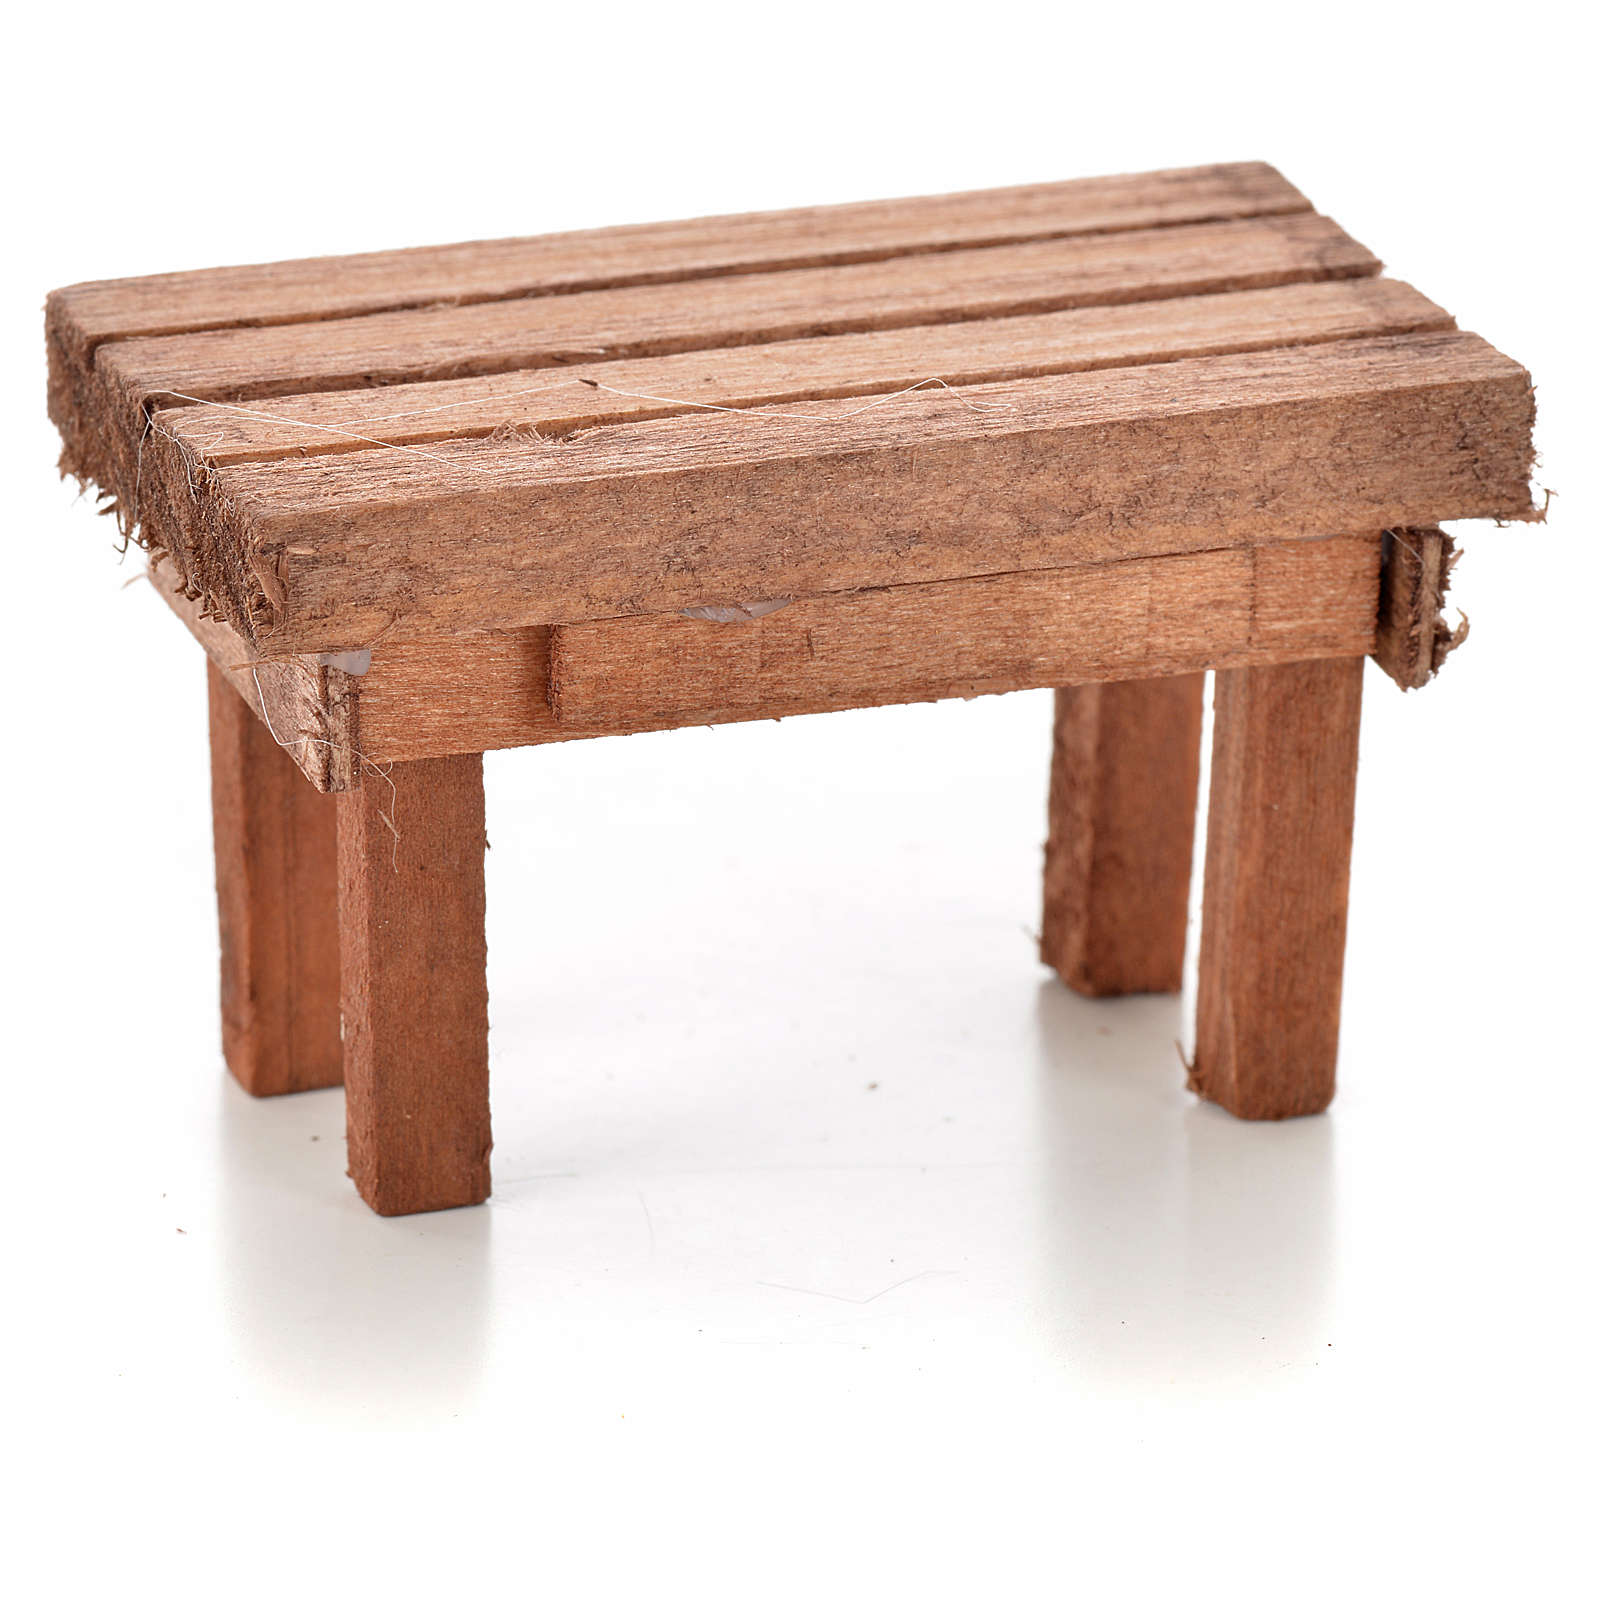 Nativity accessory, wooden table 6x3.5x3.5cm 4